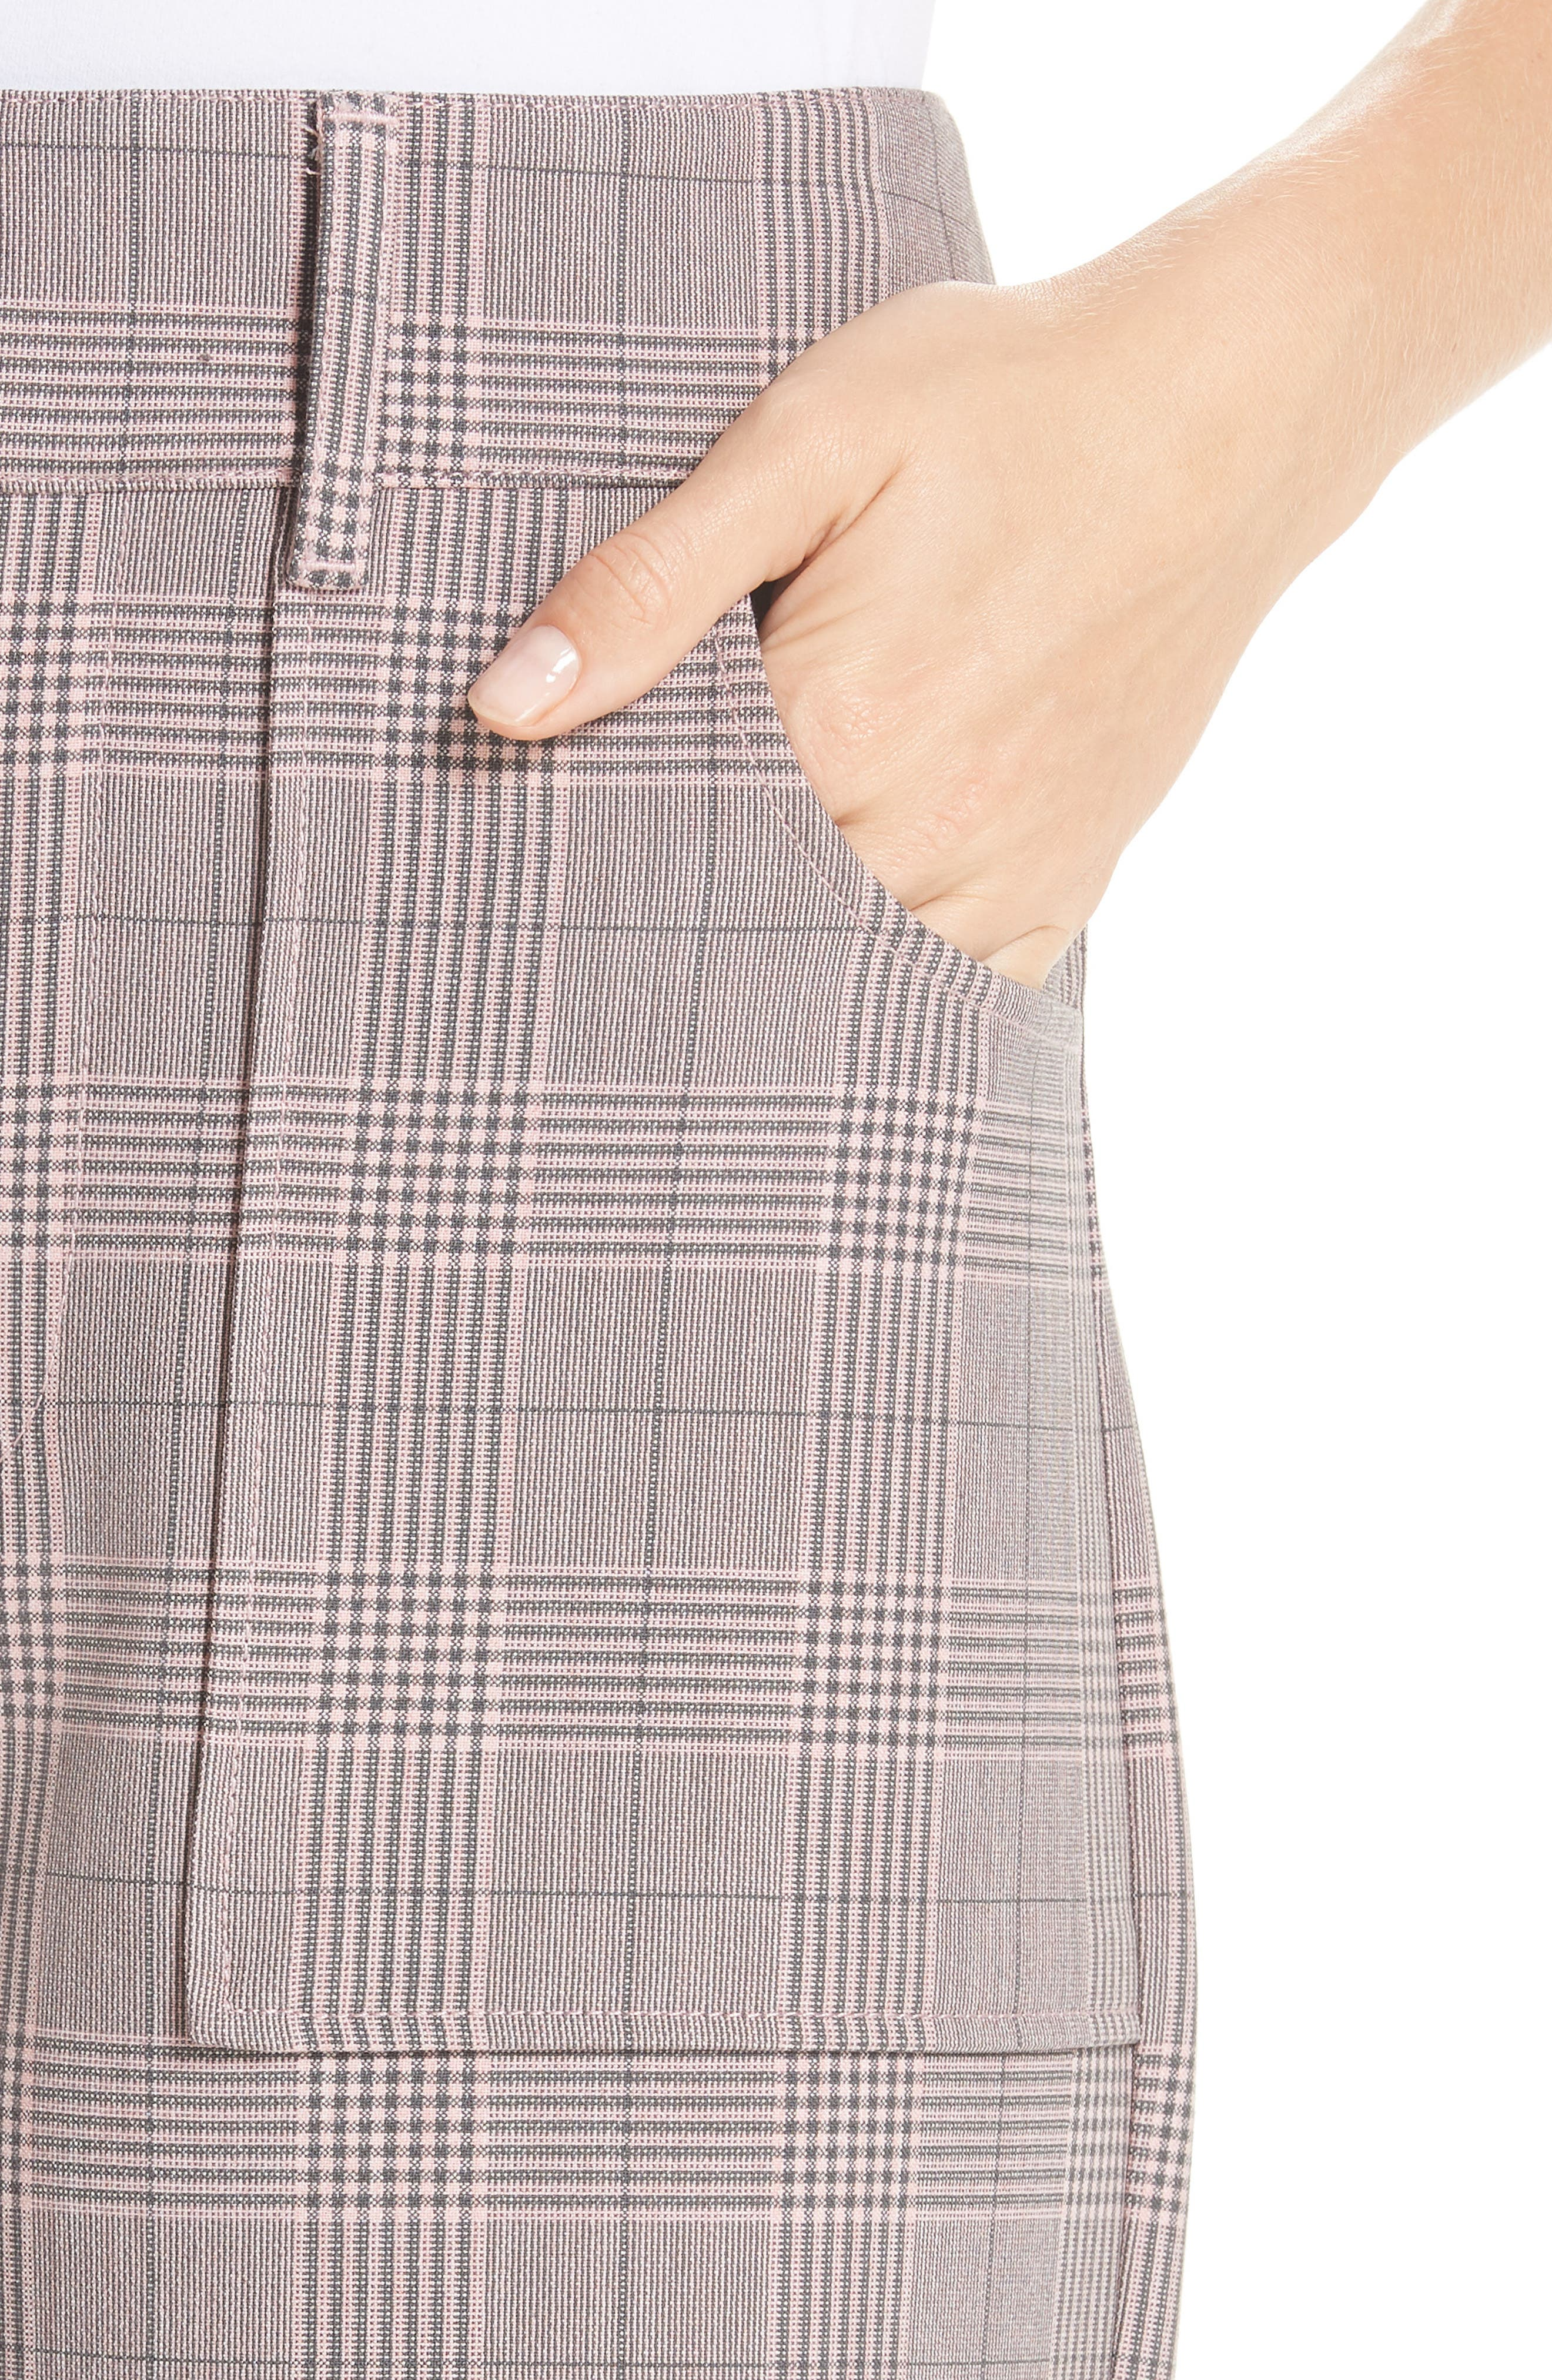 GANNI,                             Suiting Pants,                             Alternate thumbnail 4, color,                             SILVER PINK 499